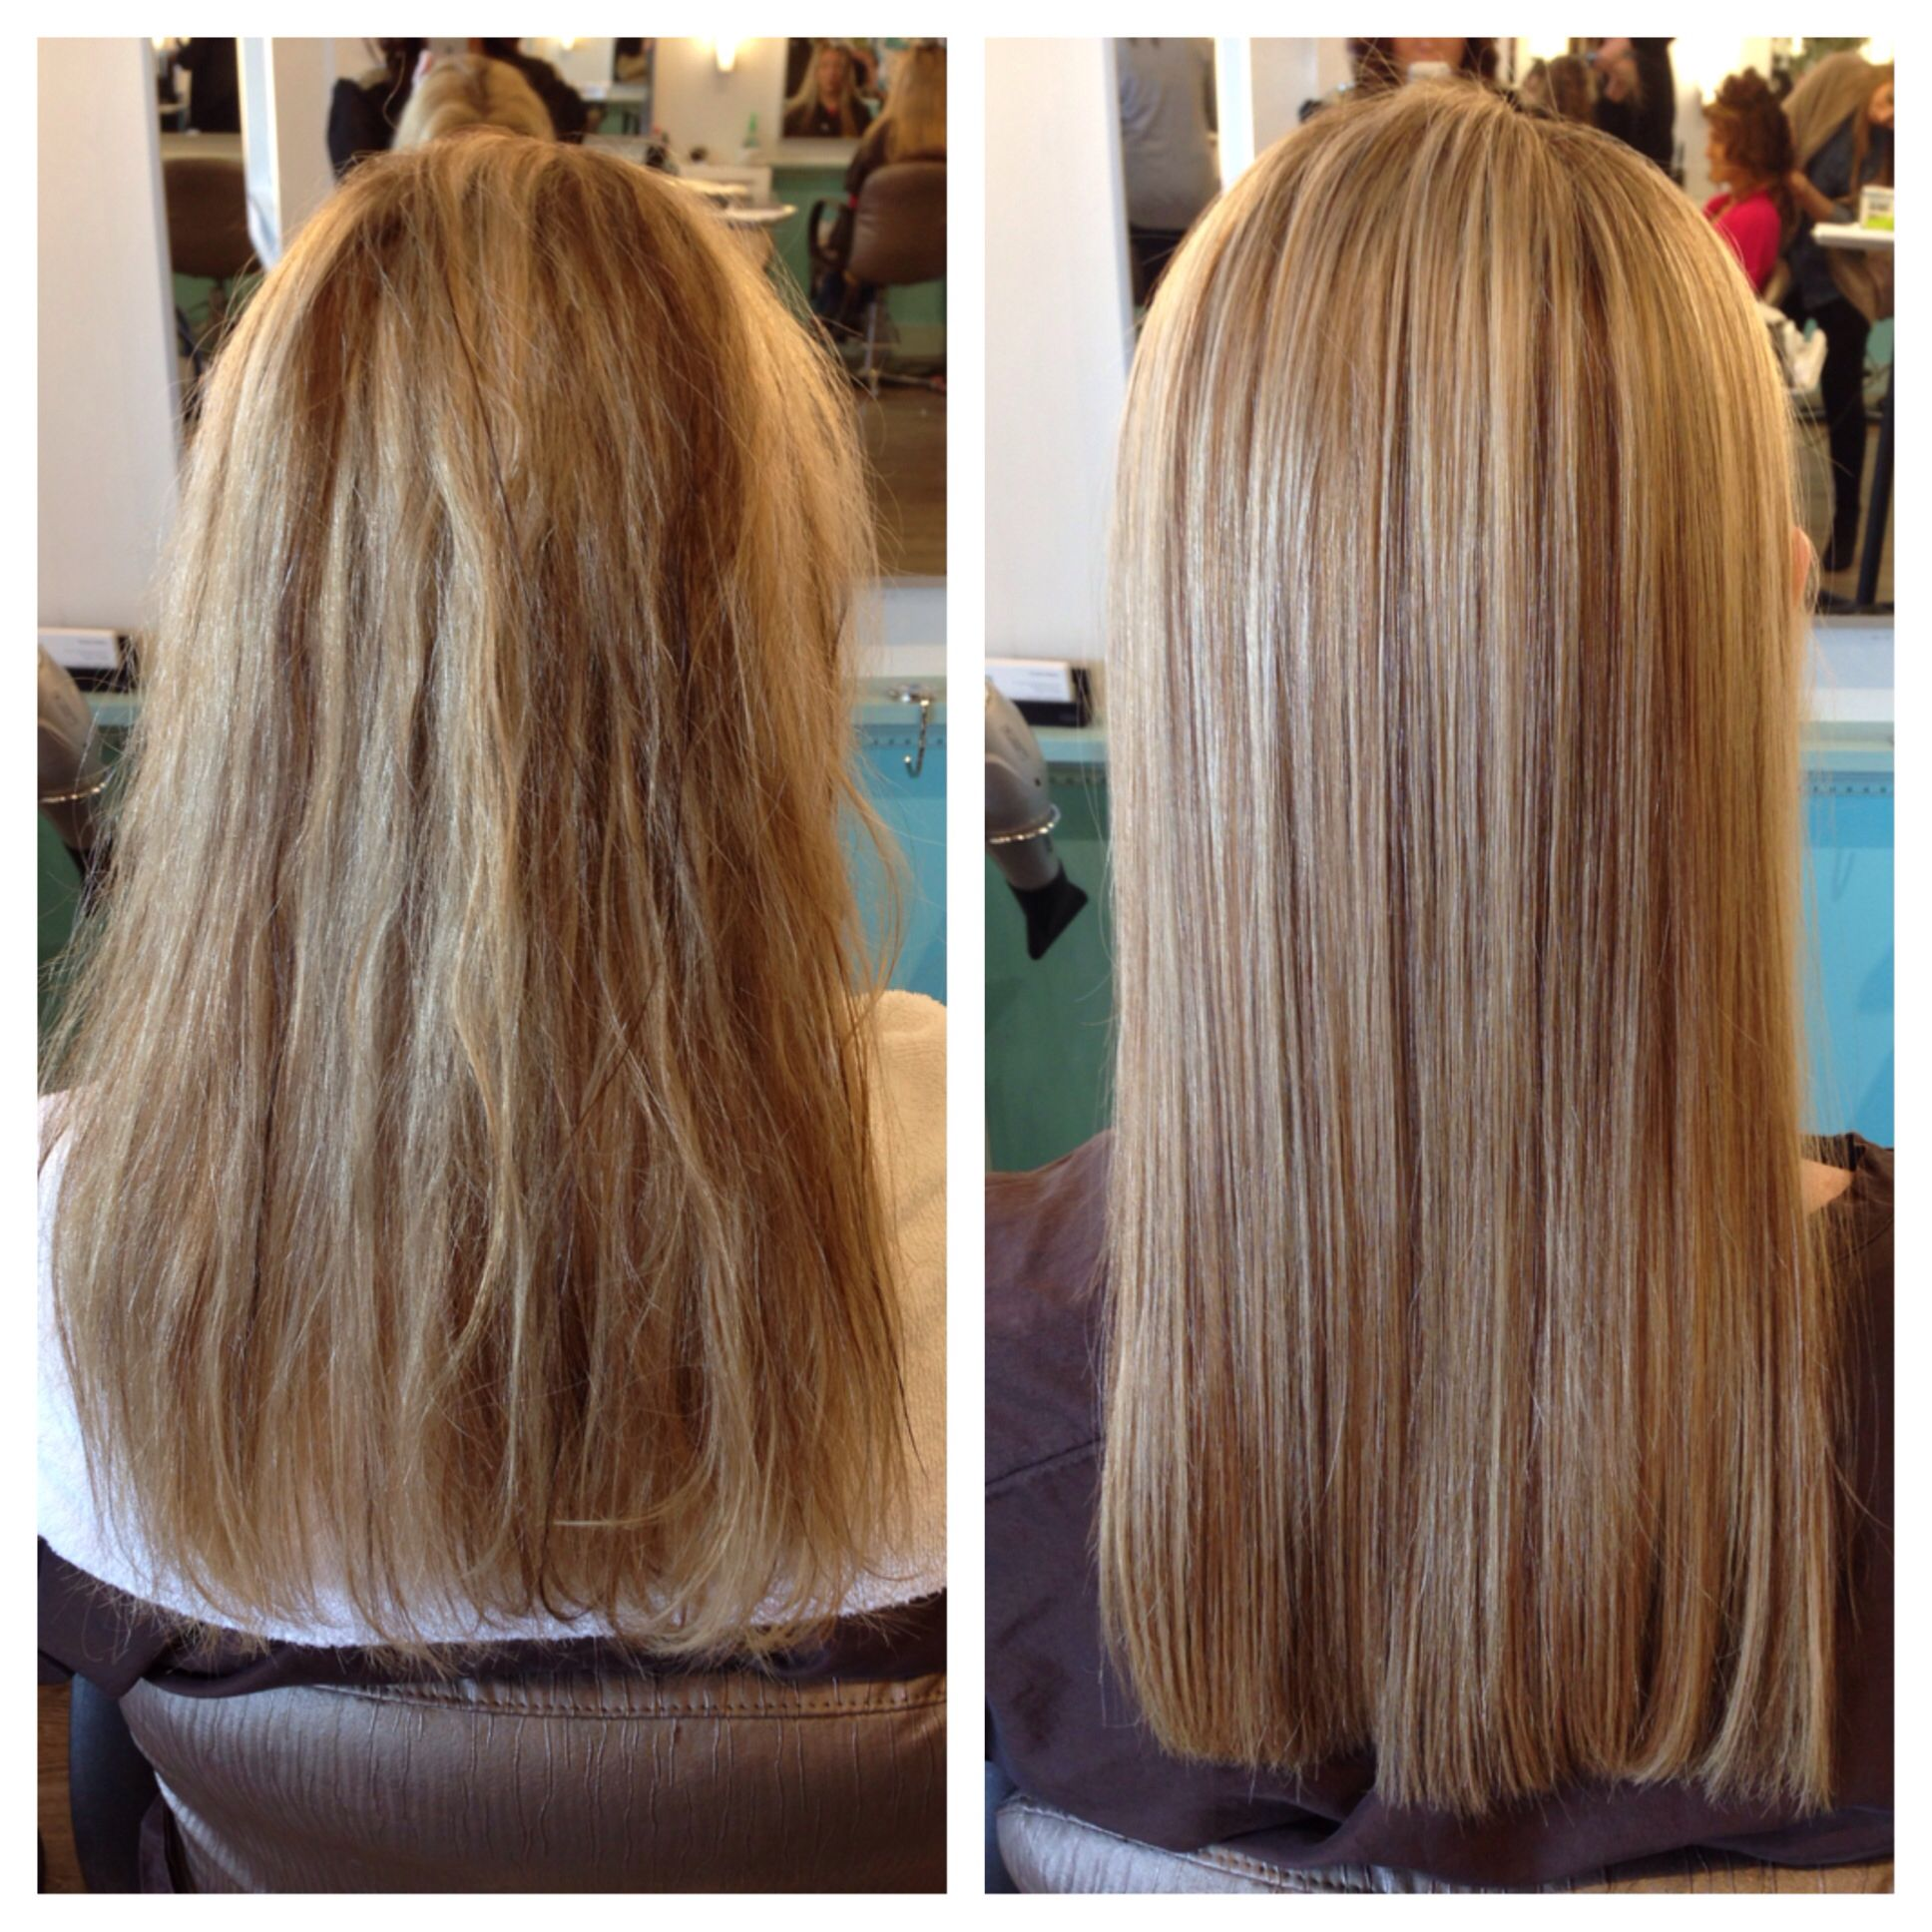 Before and after keratin smoothing treatment! Johnny